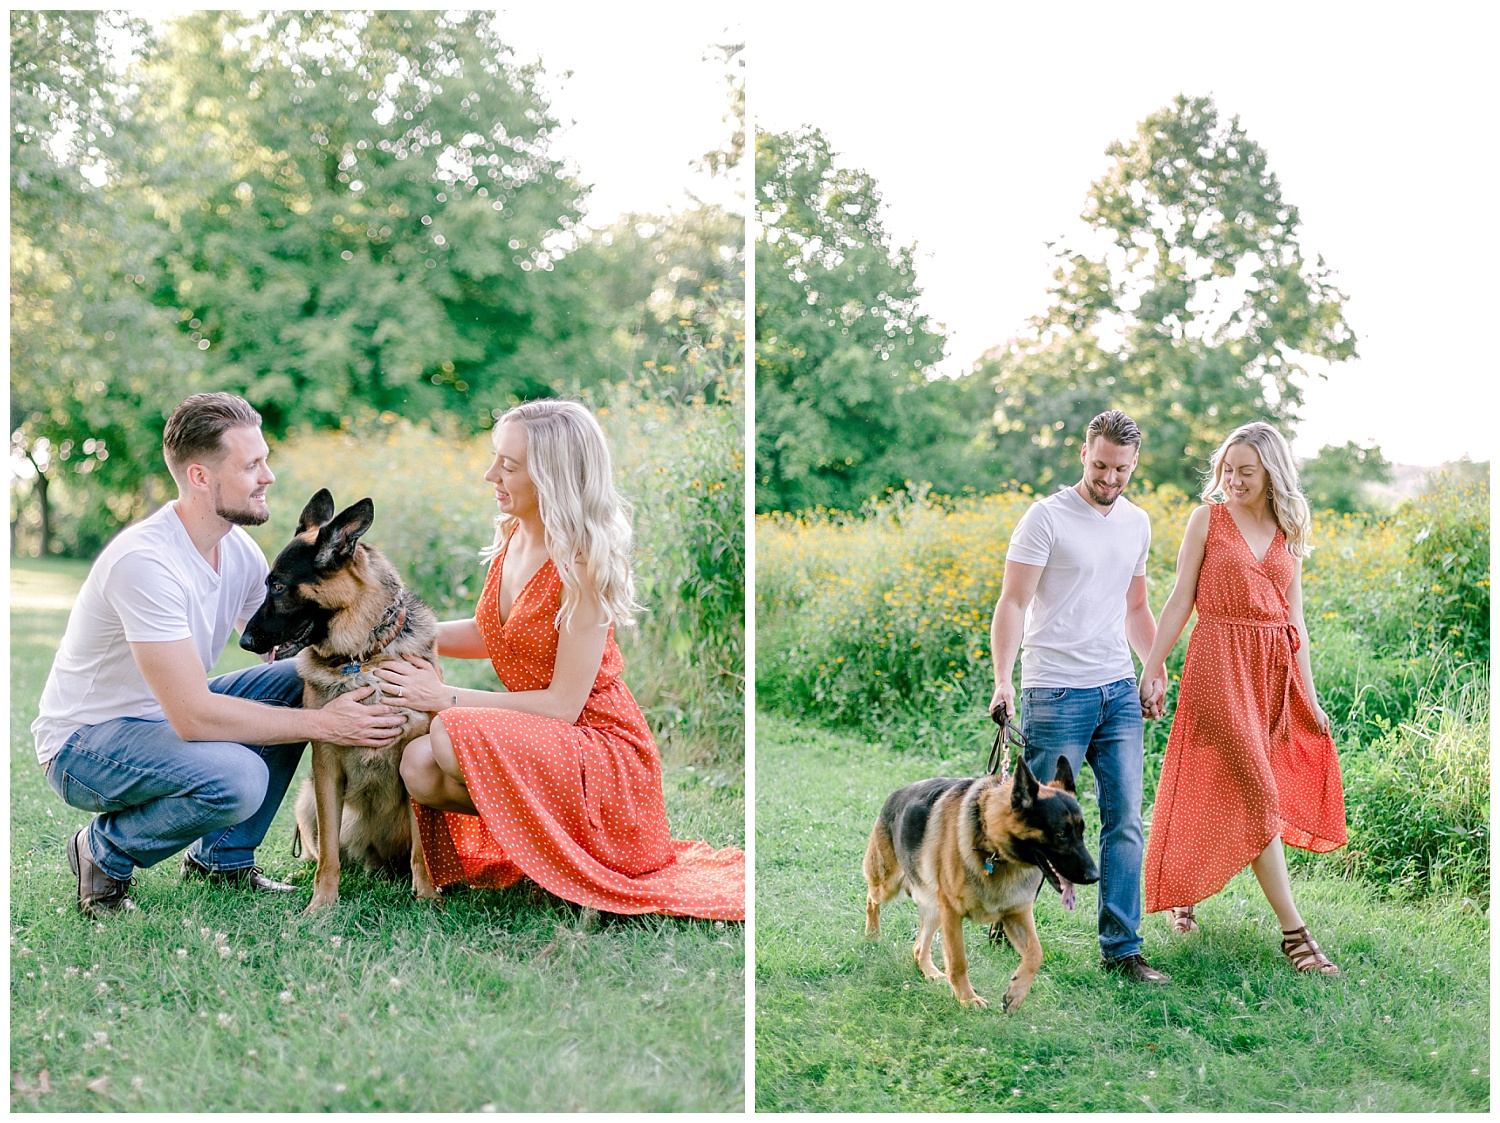 Blue Marsh Lake Reading Pennsylvania flower field golden hour engagement session by PA based wedding and lifestyle photographer Lytle photography_0007.jpg